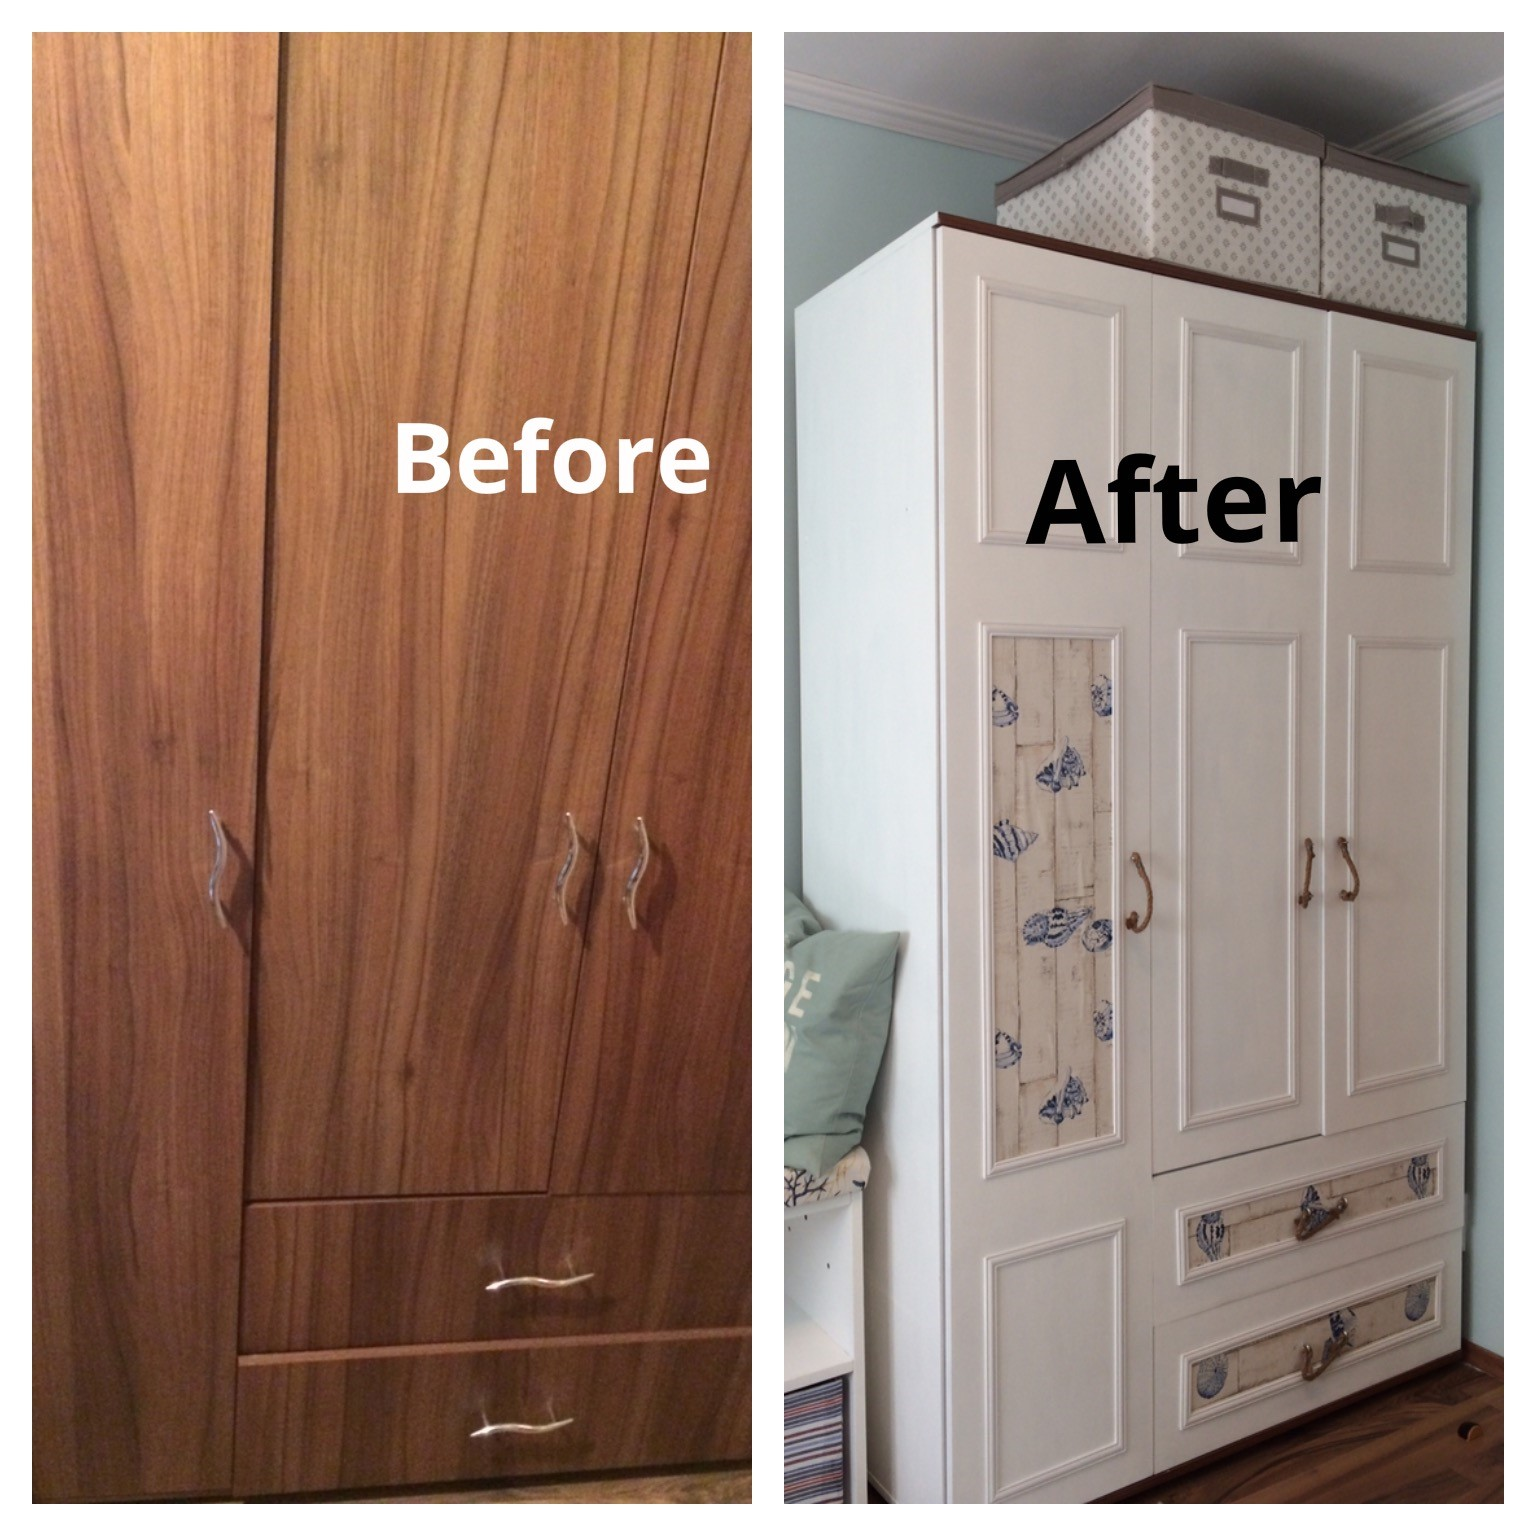 10. Add Shaker Cabinet Door Style via Simphome